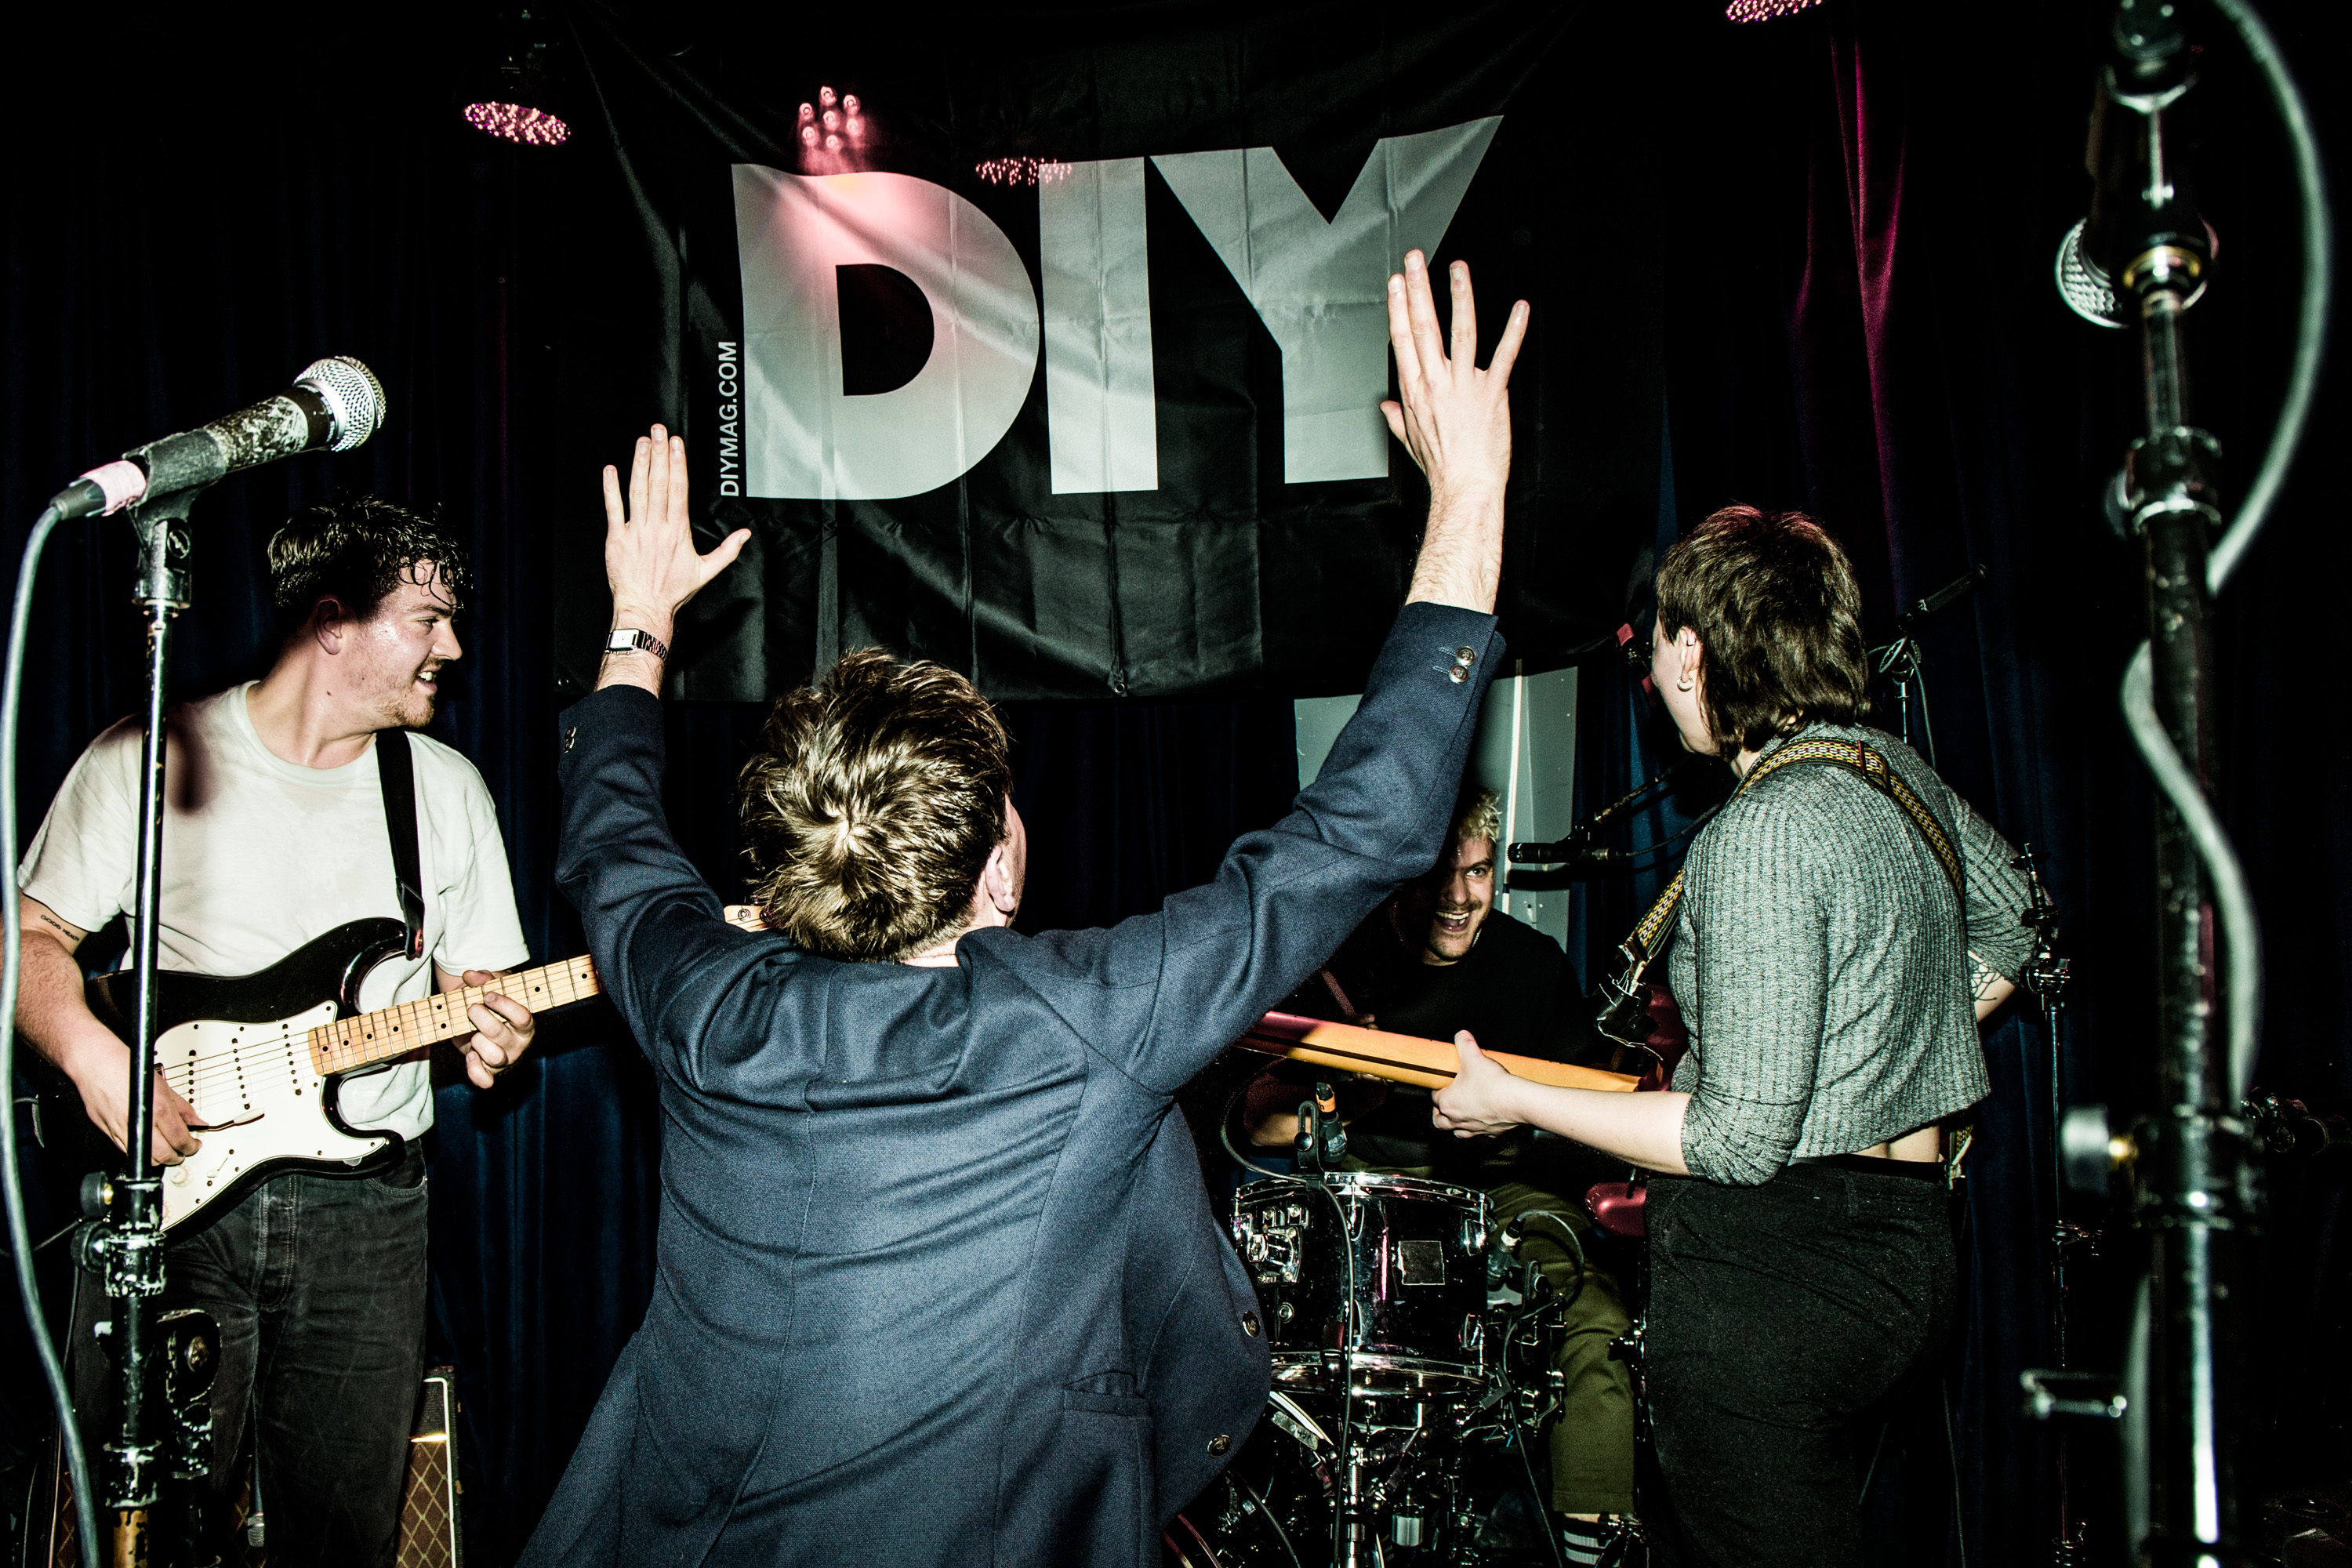 LIFE lead the cavalry at DIY's New Colossus stage in New York